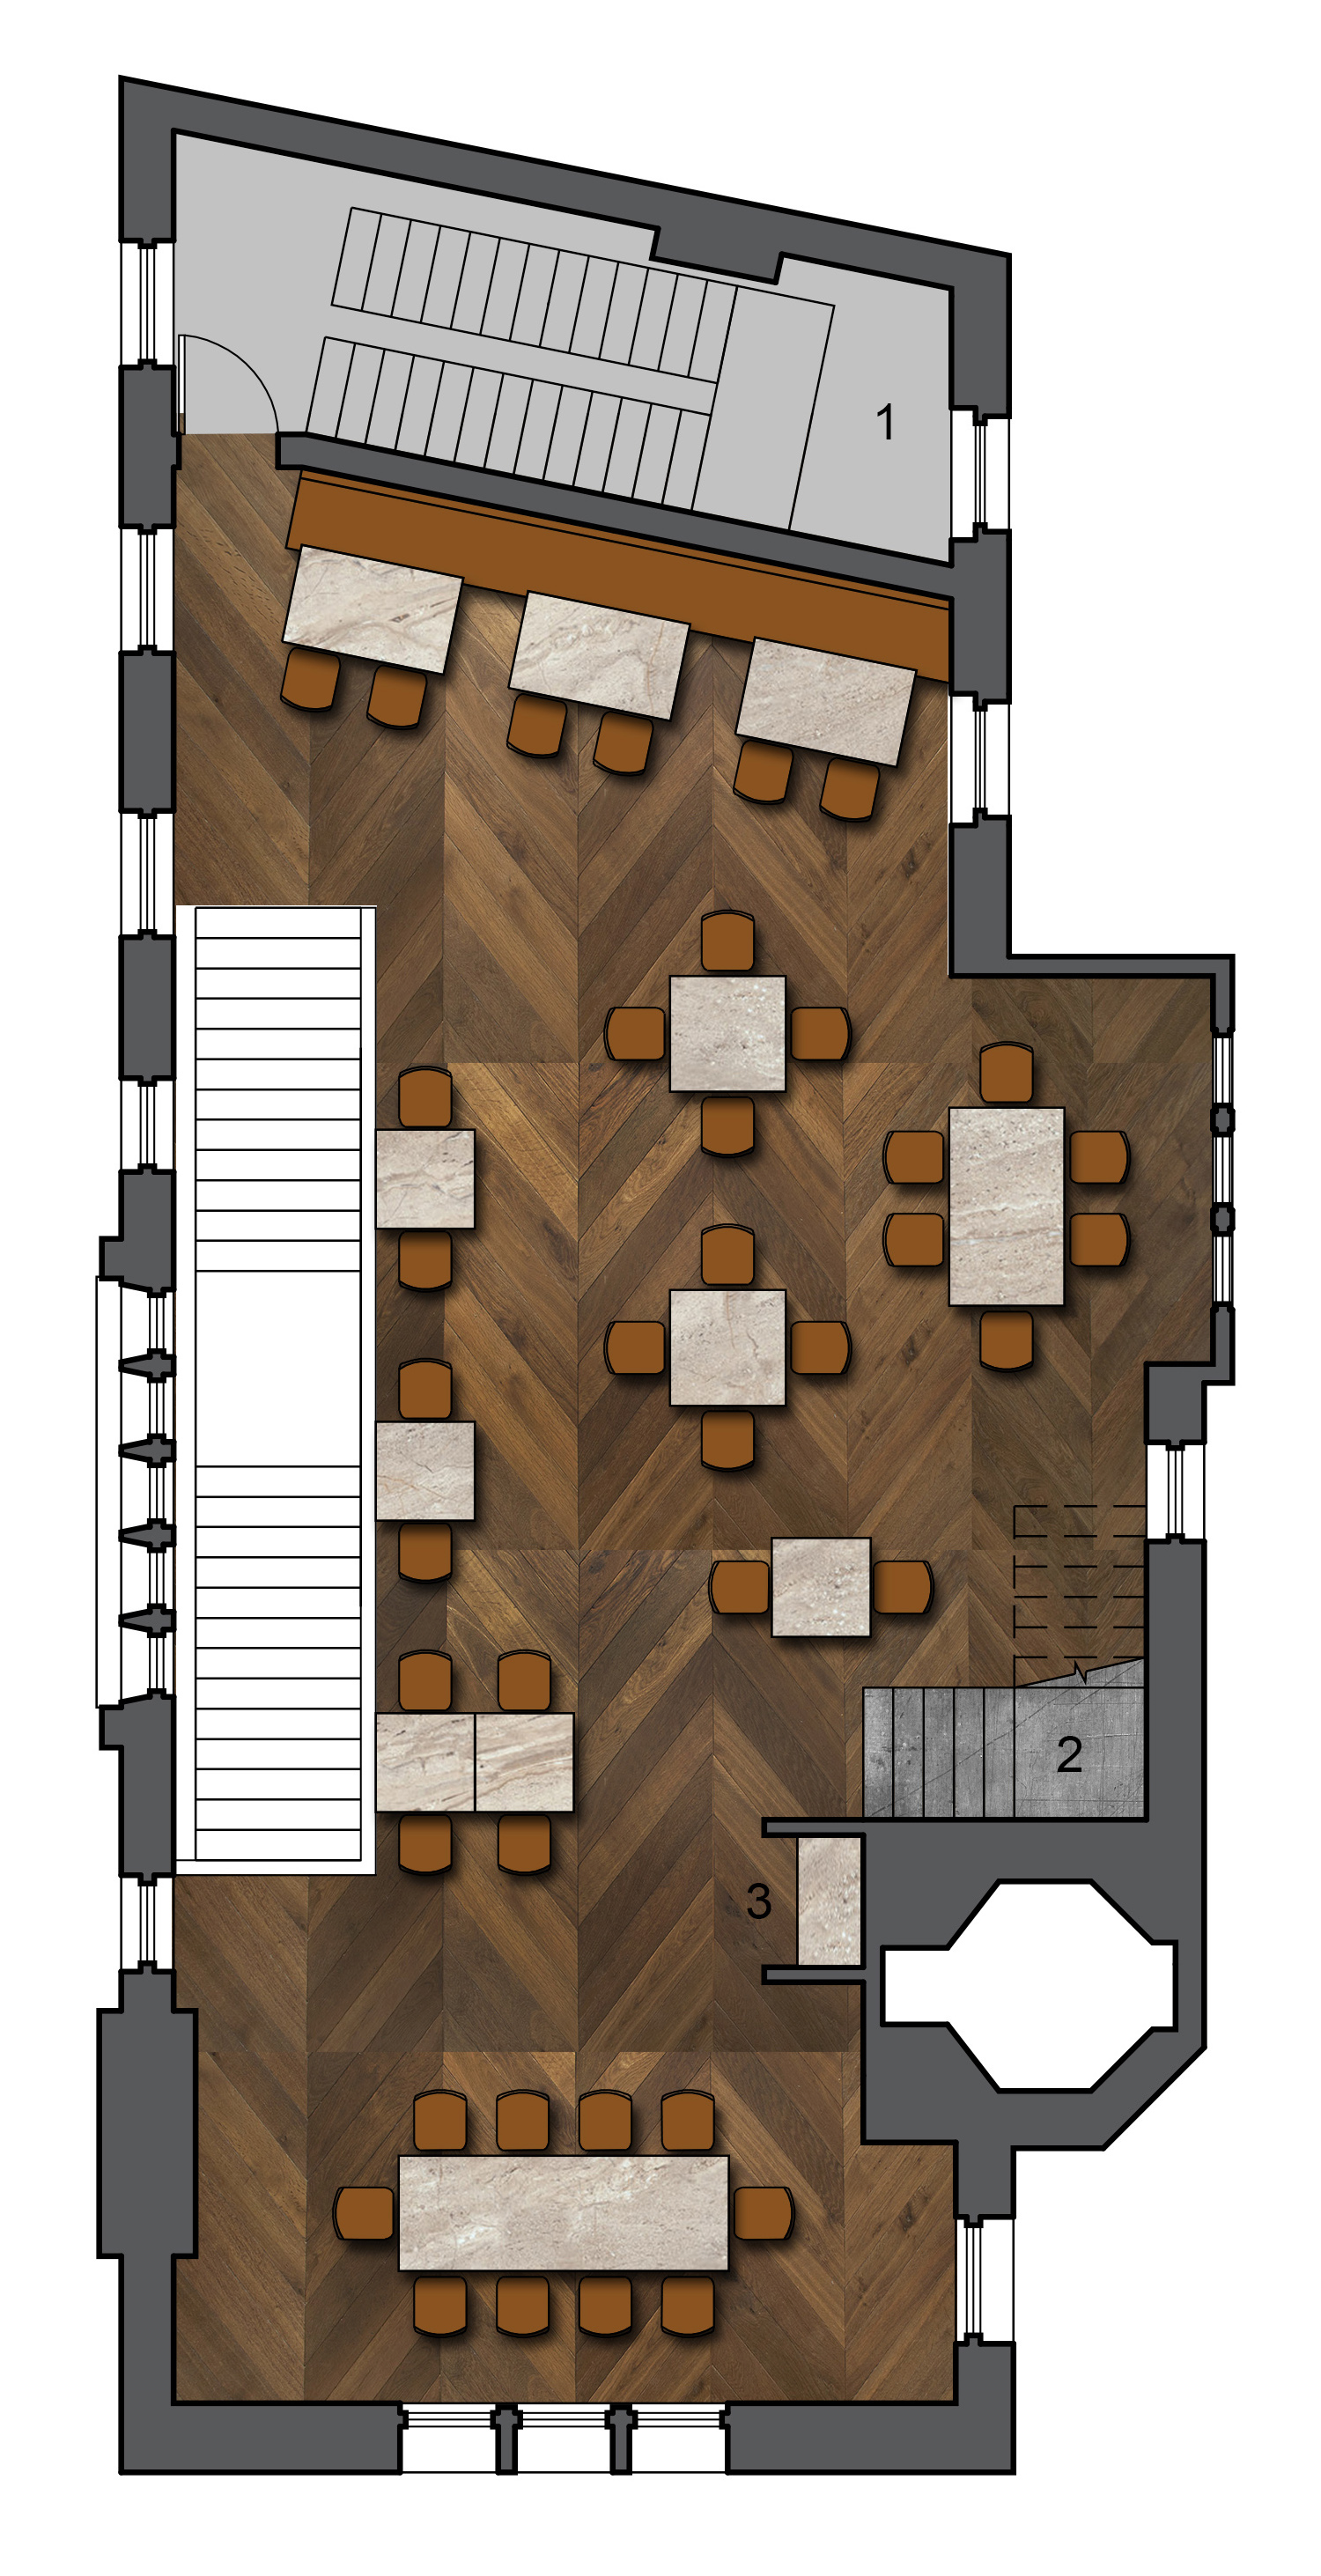 Second Level - Dining   1.Kitchen Stairs 2.Secondary Stair to Chocolate Shop 3.Transaction Stand